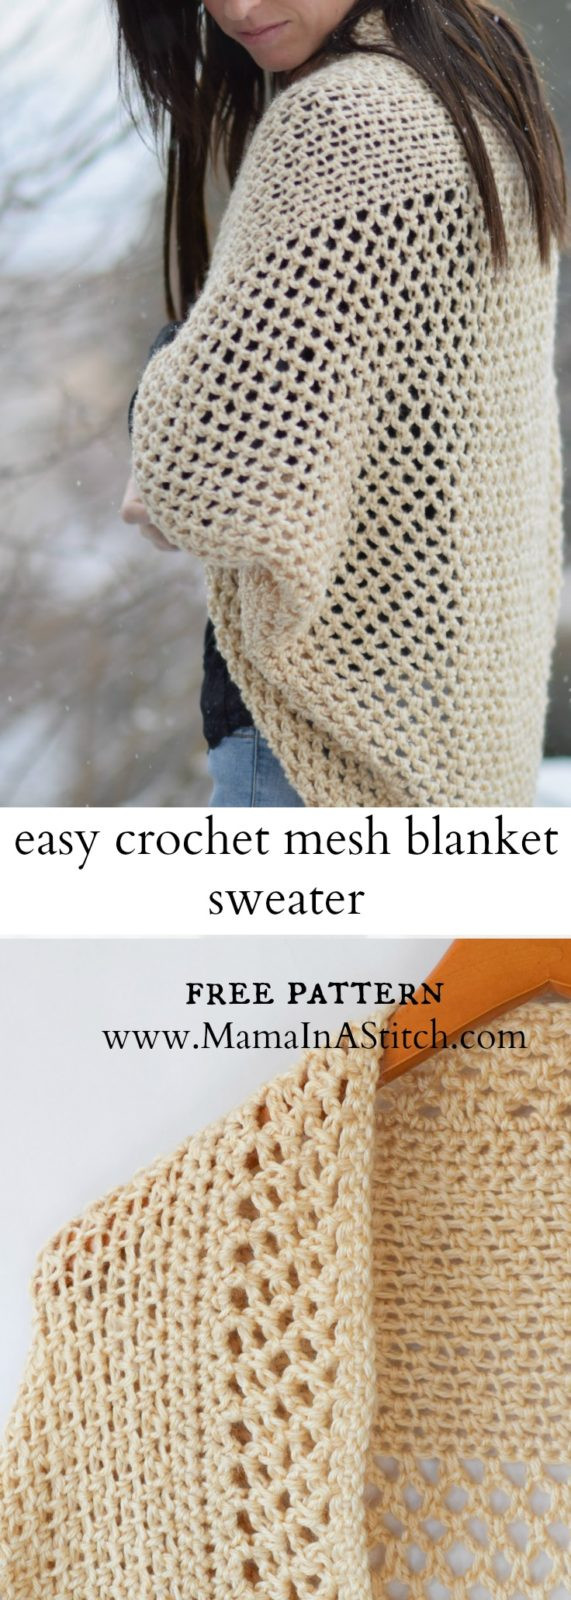 Awesome Mod Mesh Honey Blanket Sweater – Mama In A Stitch Easy Crochet Sweater Pattern Of Elegant Telluride Easy Knit Kimono Pattern – Mama In A Stitch Easy Crochet Sweater Pattern